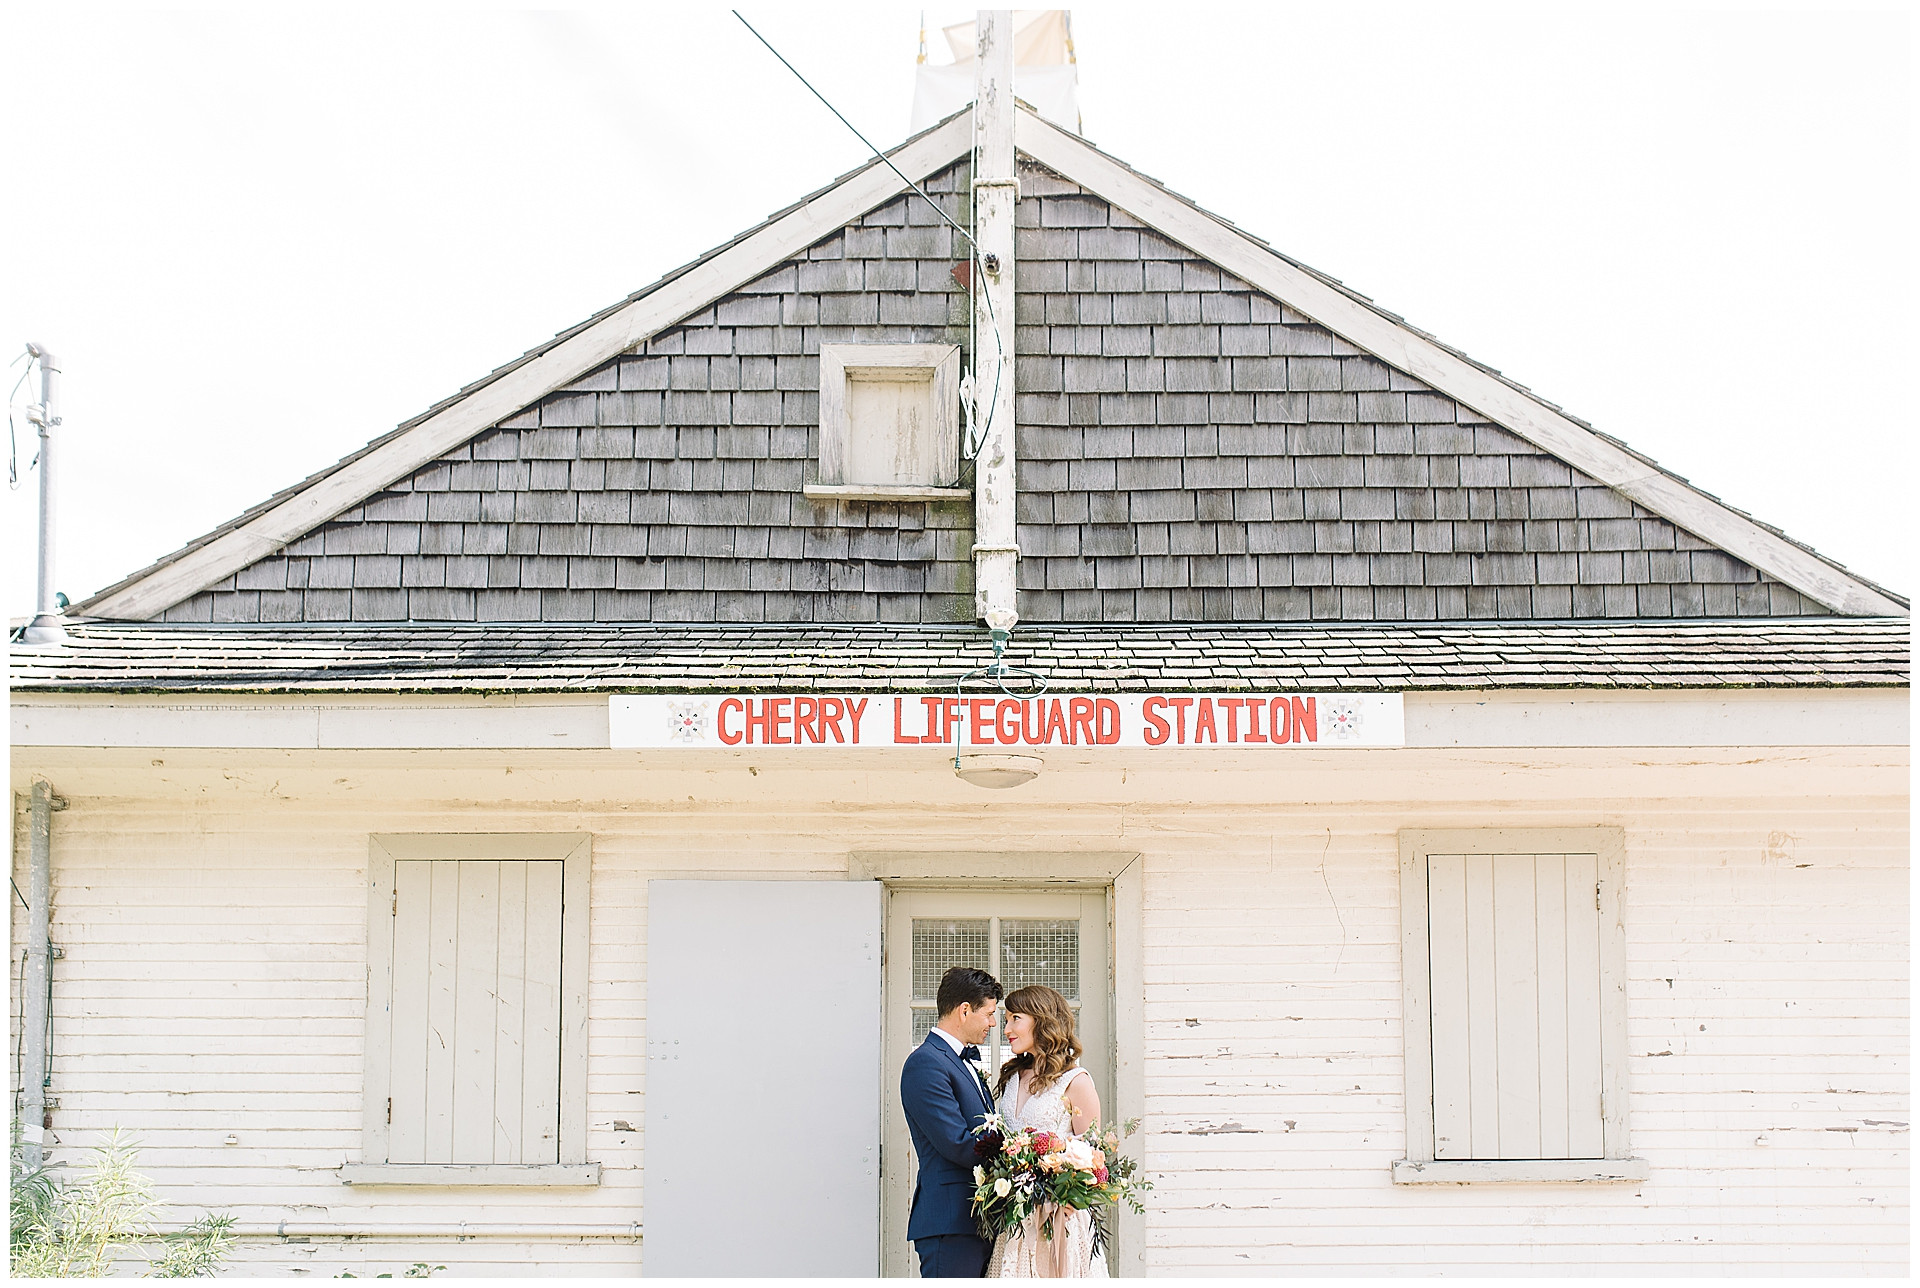 wedding-couple-cherry-beach-lifegaurd-station-beach-wedding